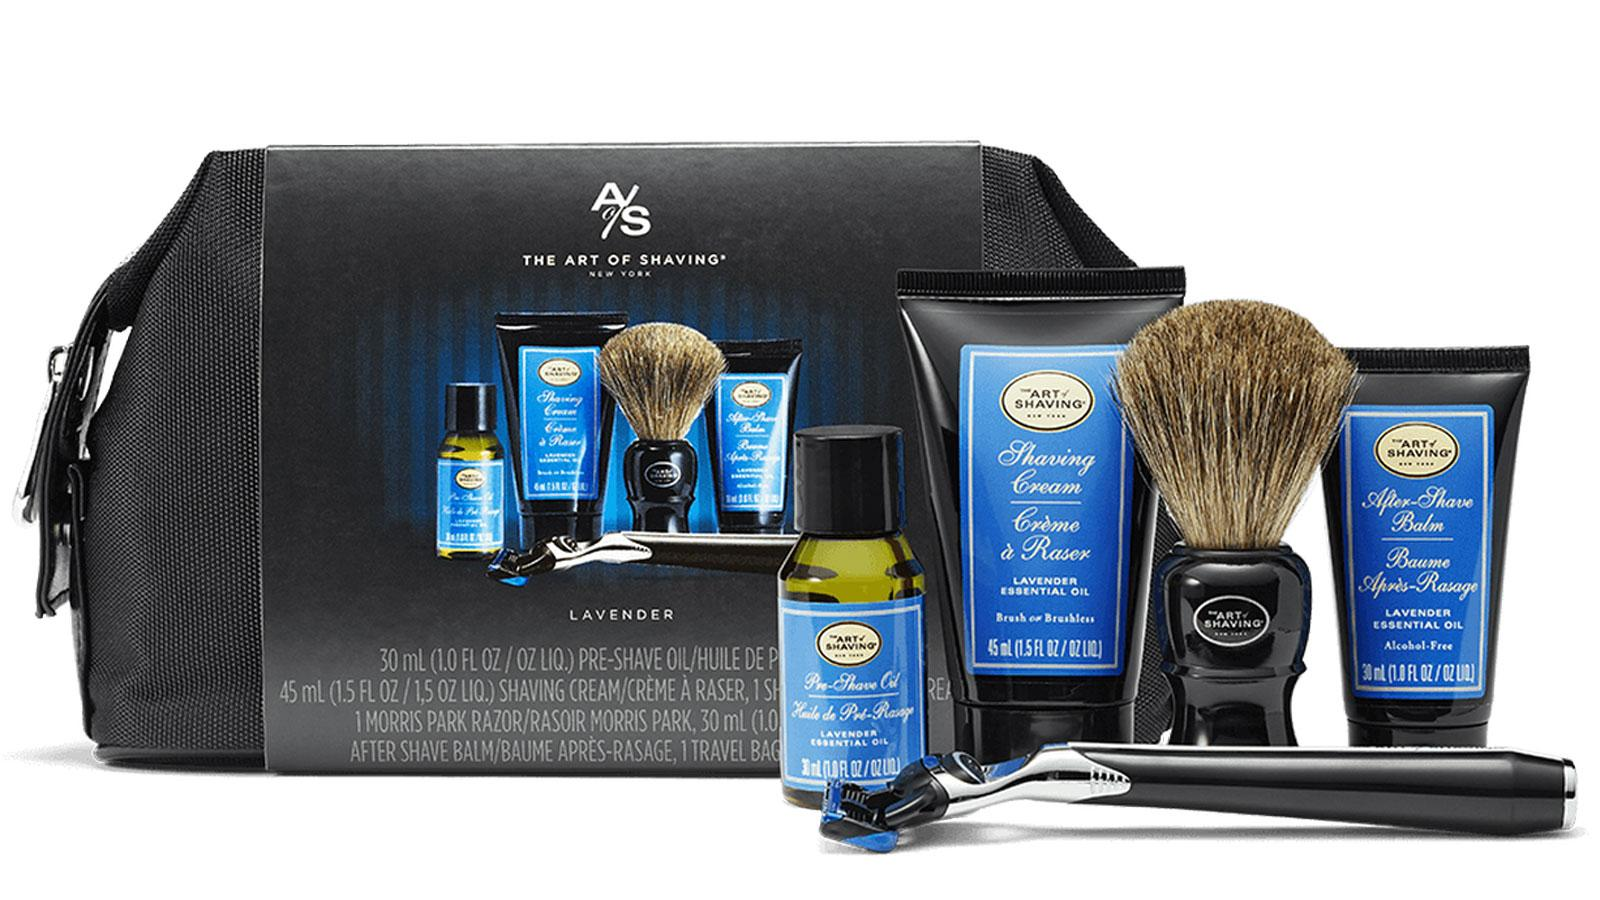 Art of Shaving Lavender Shaving Kit